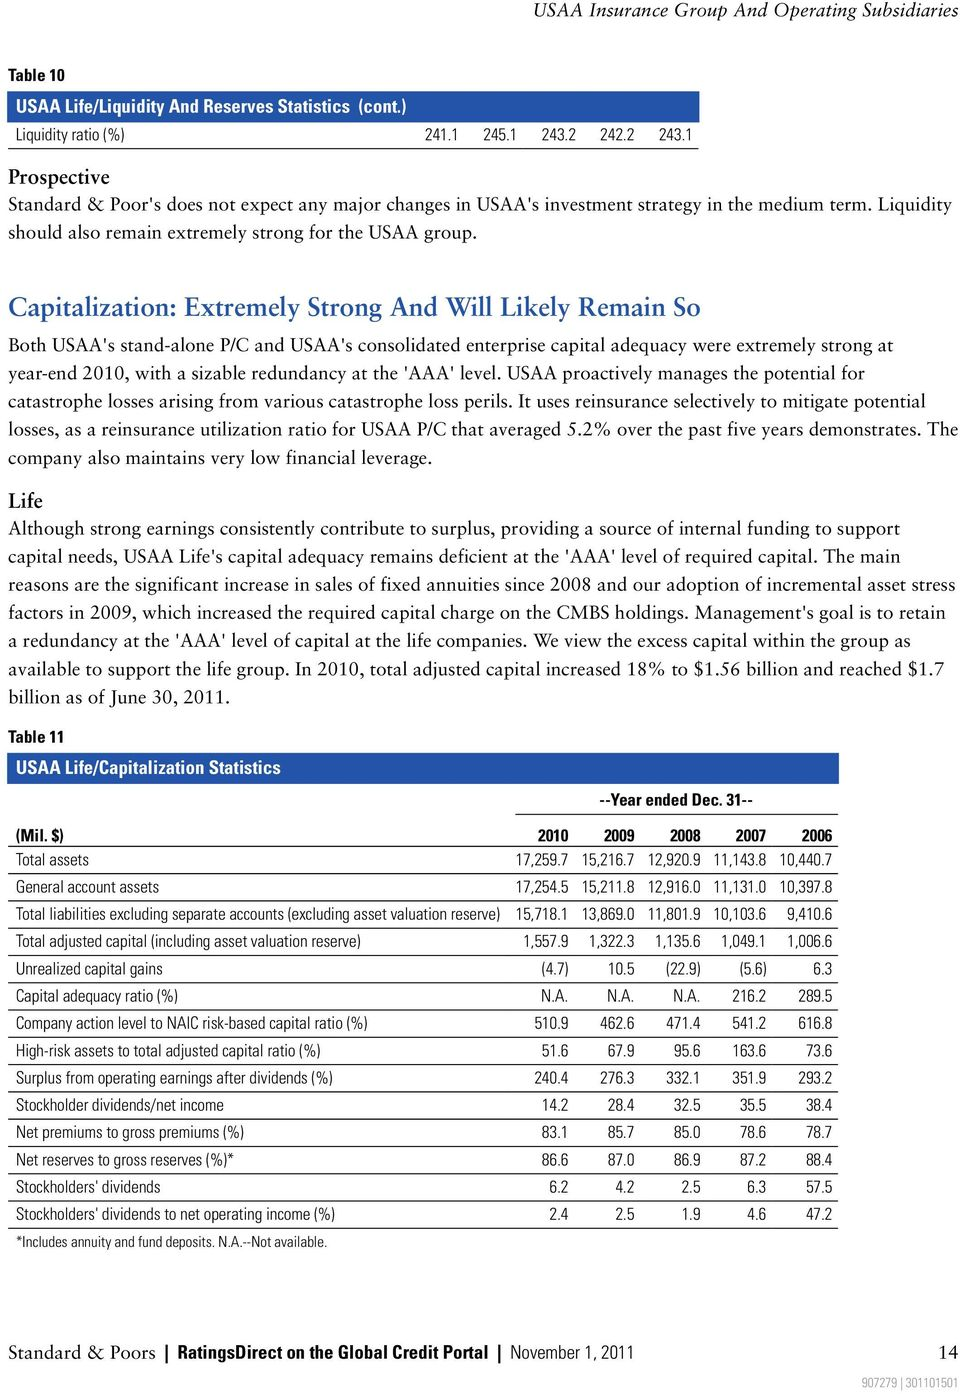 Capitalization: Extremely Strong And Will Likely Remain So Both USAA's stand-alone P/C and USAA's consolidated enterprise capital adequacy were extremely strong at year-end 2010, with a sizable